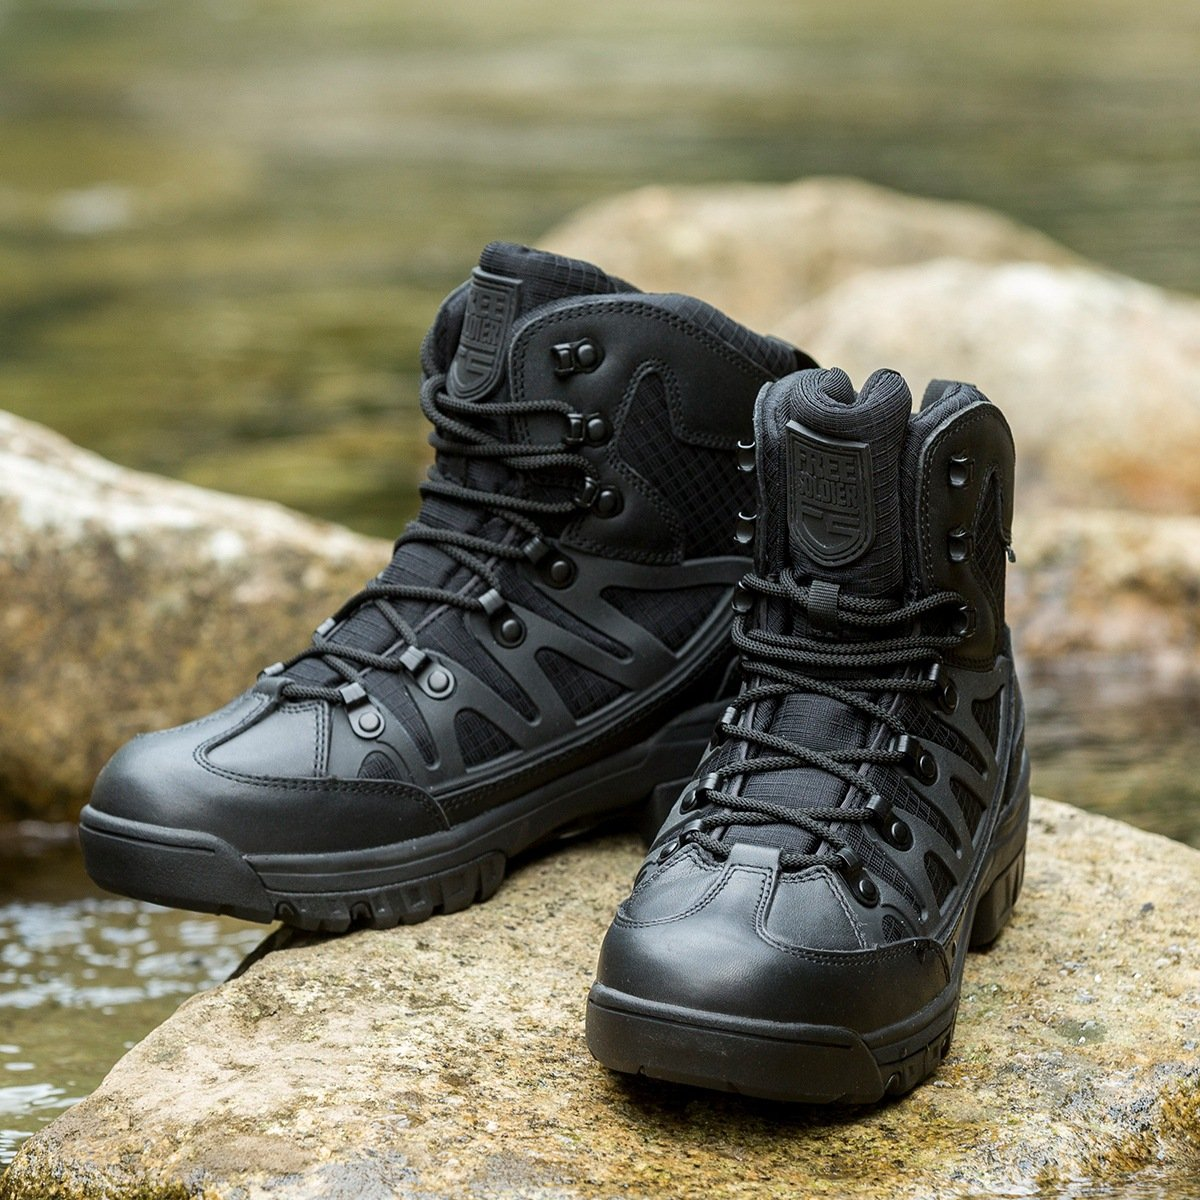 FREE SOLDIER Men's Outdoor Tactical Boots 6 Inches Breathable Suedu Leather Military Hiking Boots